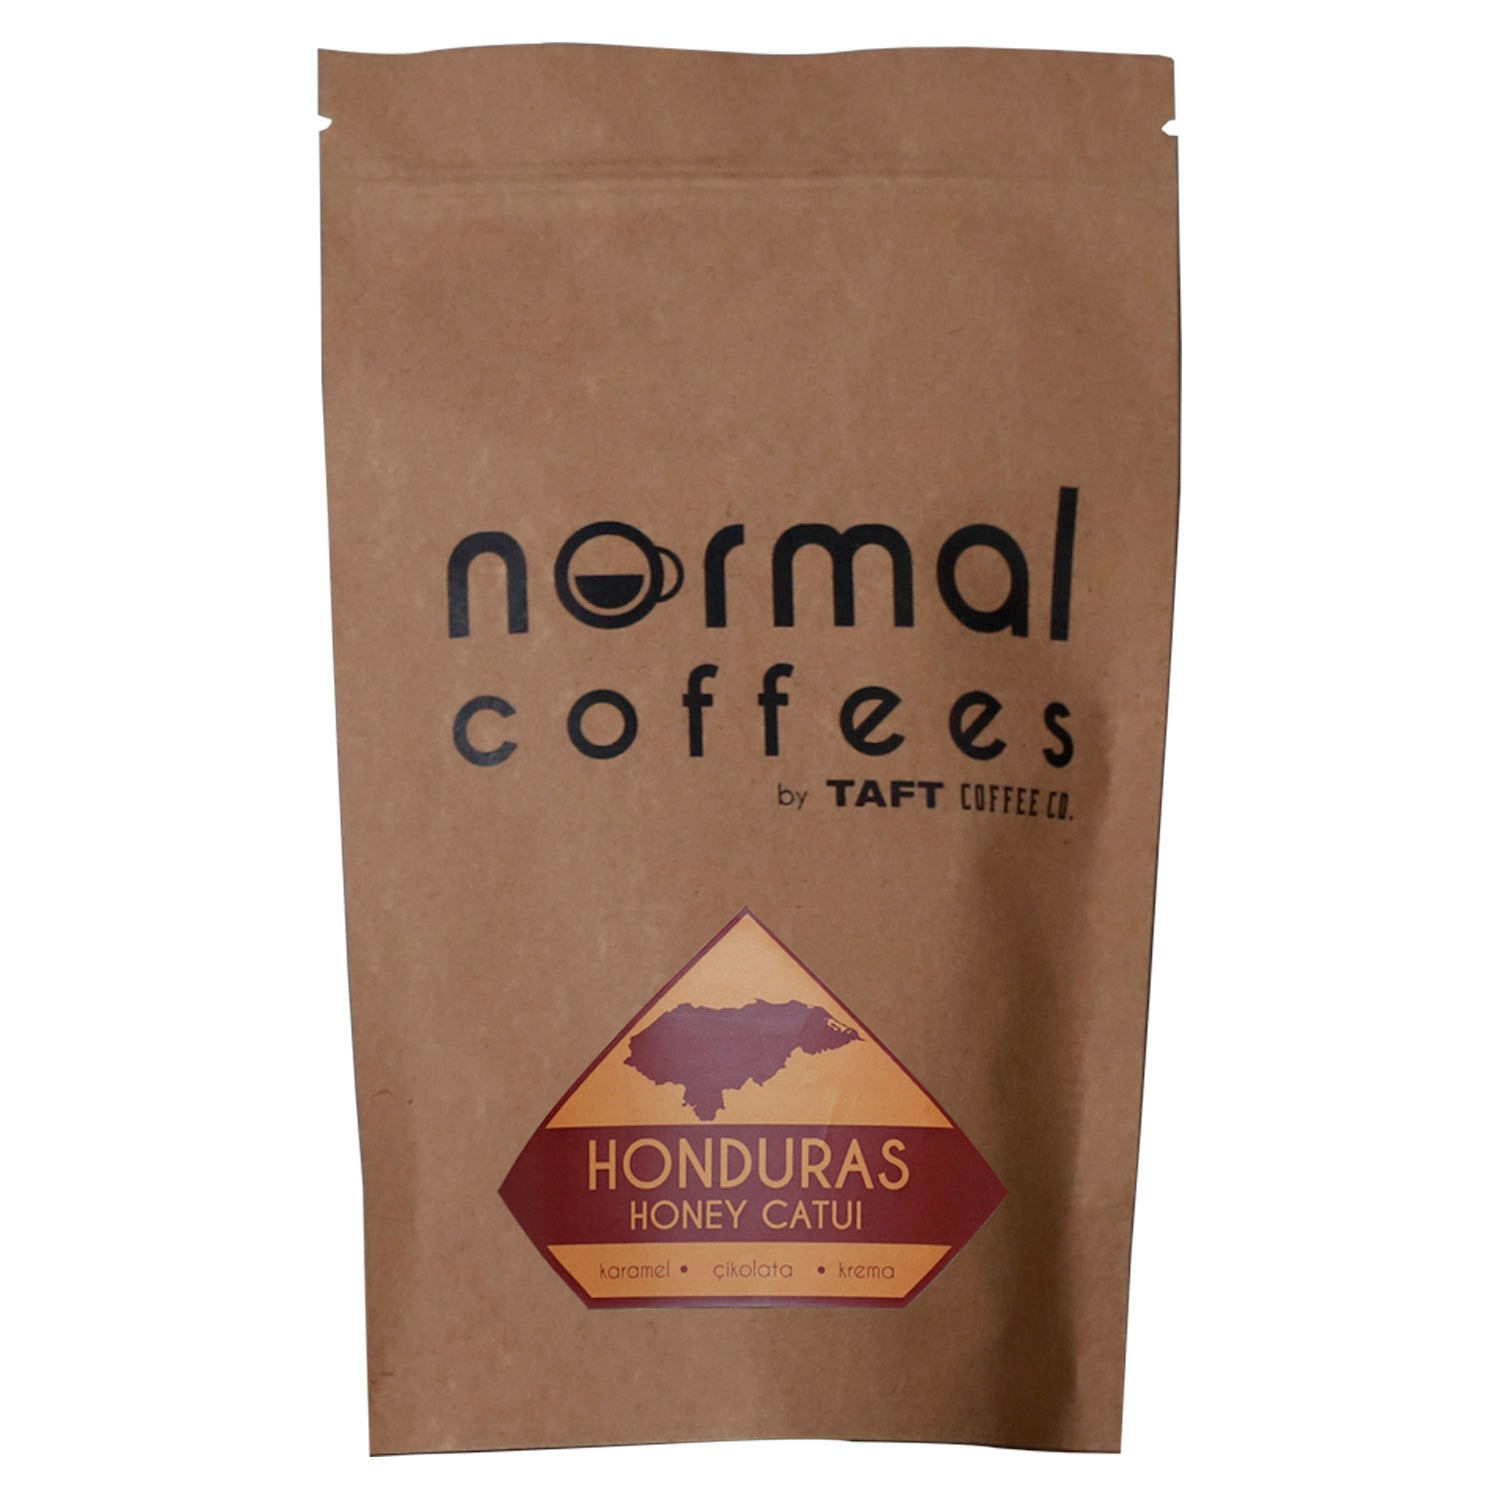 Normal Coffees by TAFT Coffee Co. Honduras Honey